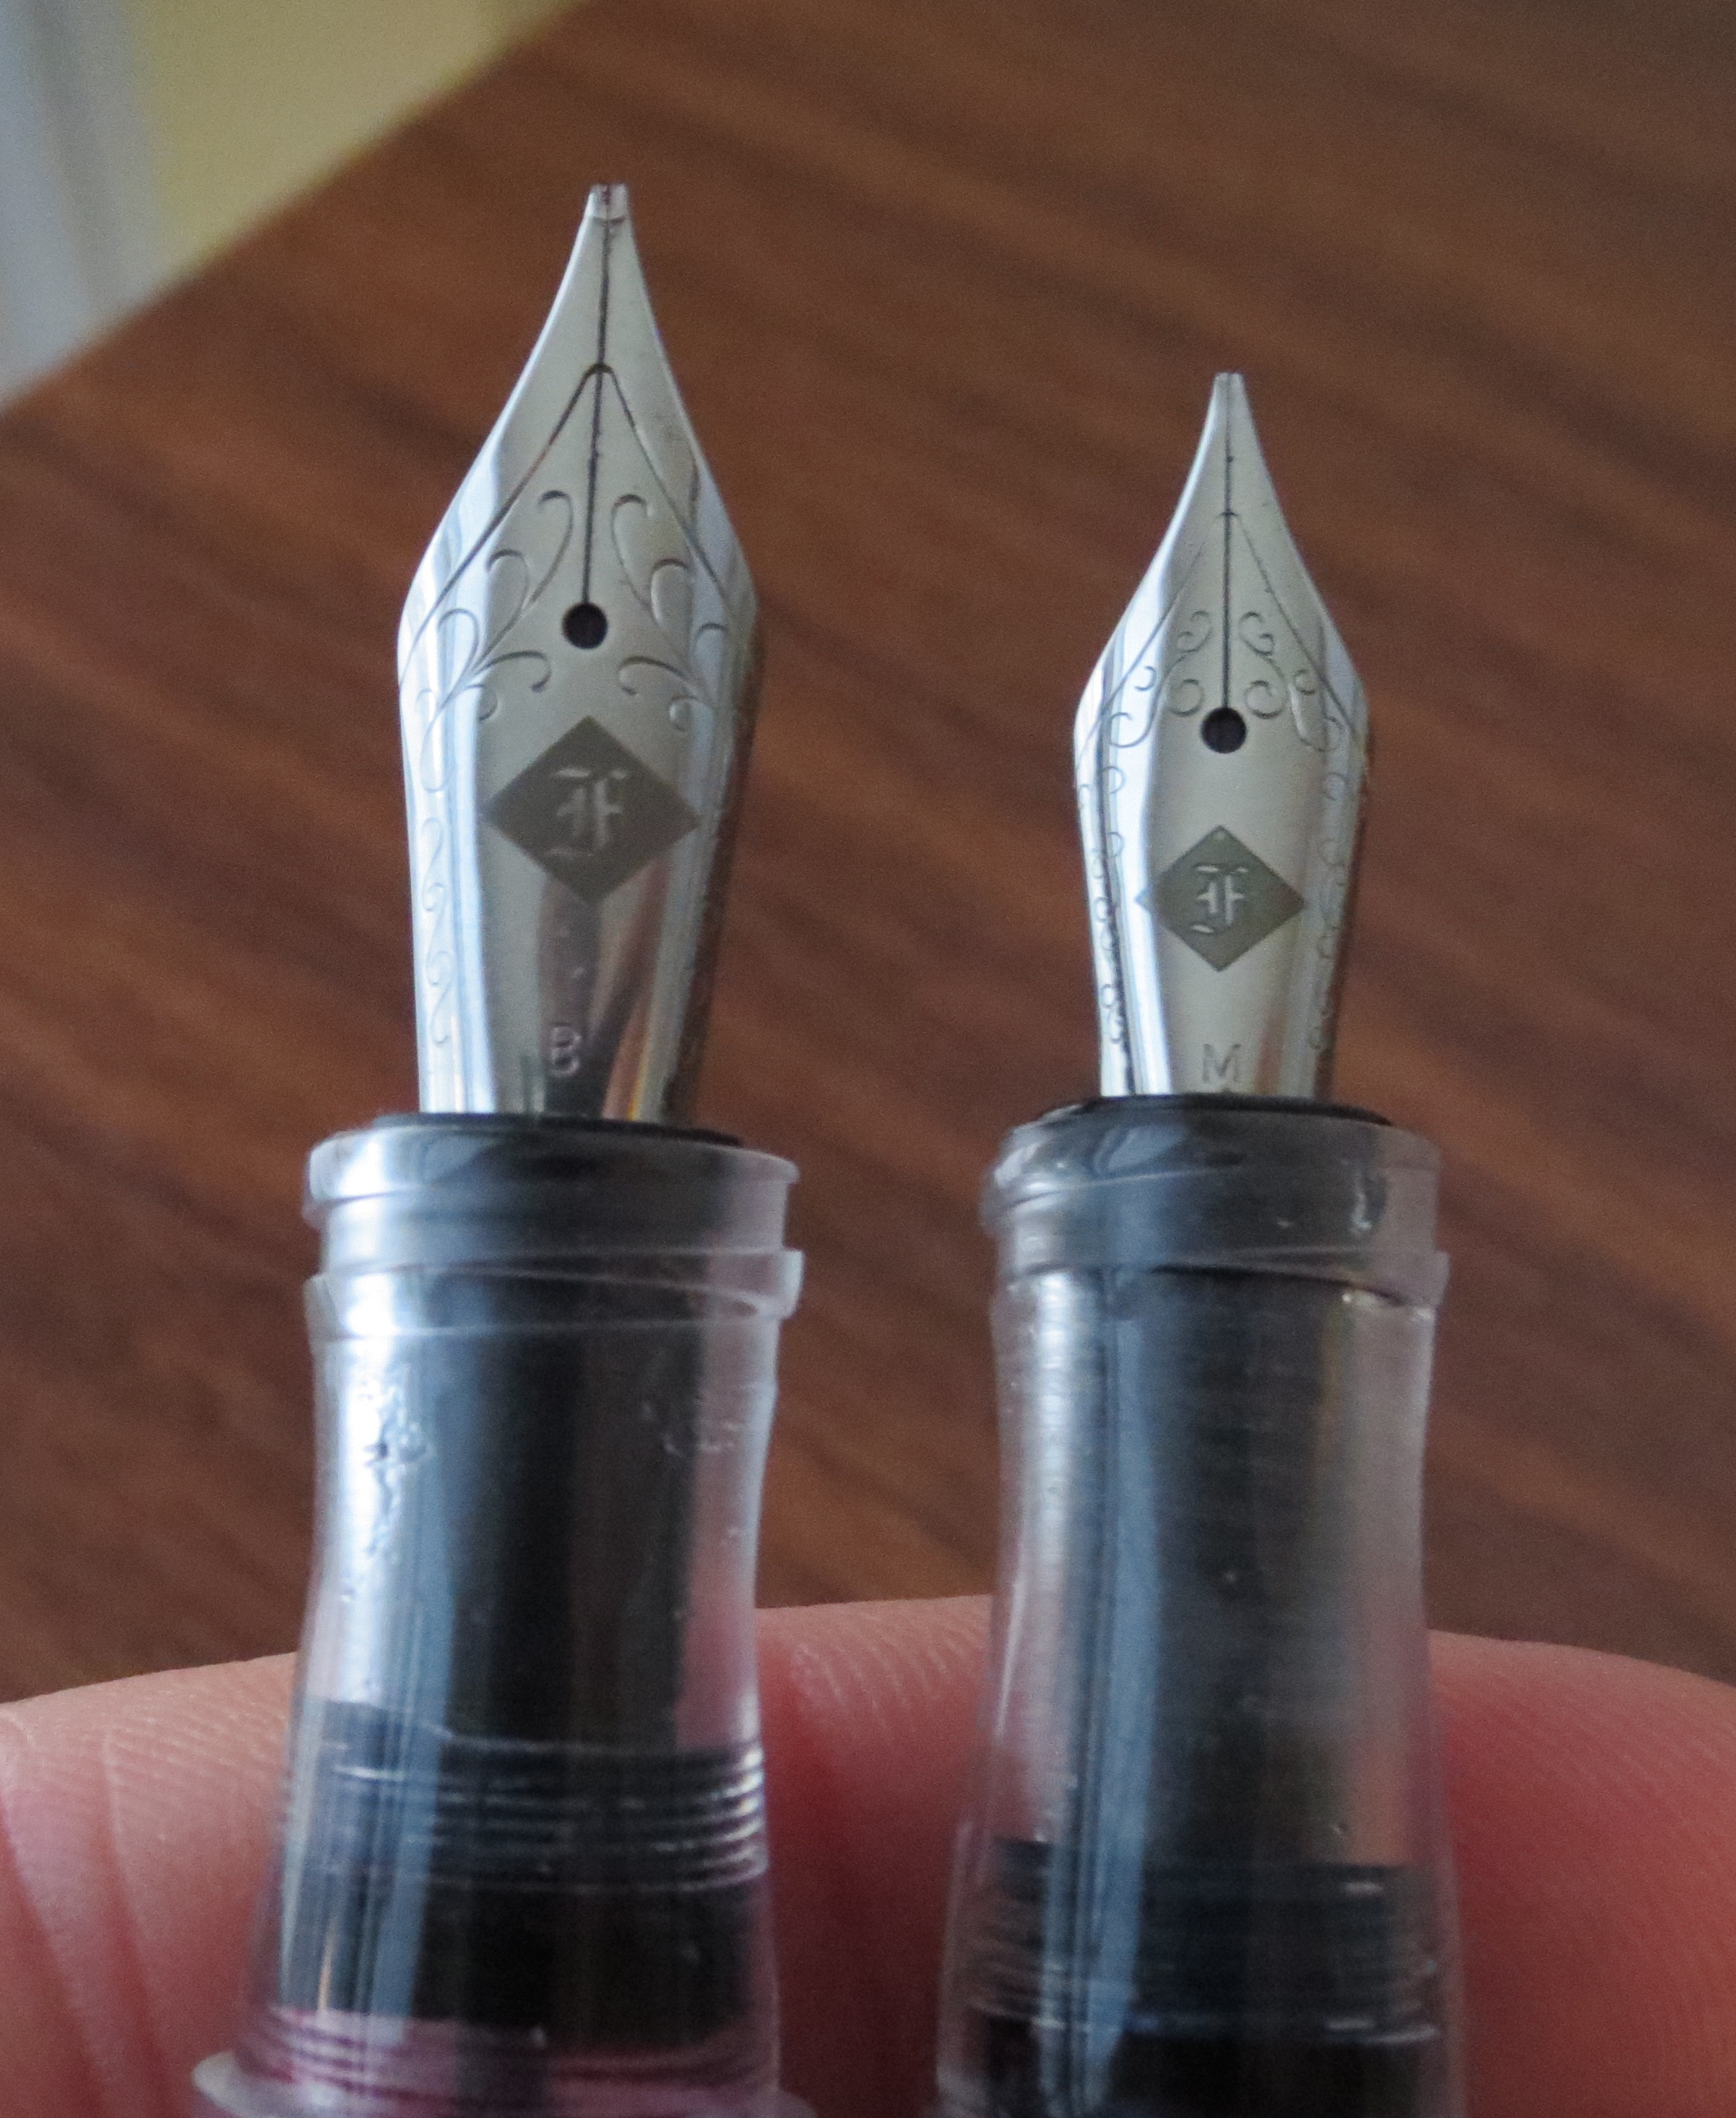 Franklin-Christoph Nib Size Comparison:  Model 66 No. 6 nib on the left; Model 65 No. 5 nib on the right.  Note the threads at the top of the grip section.